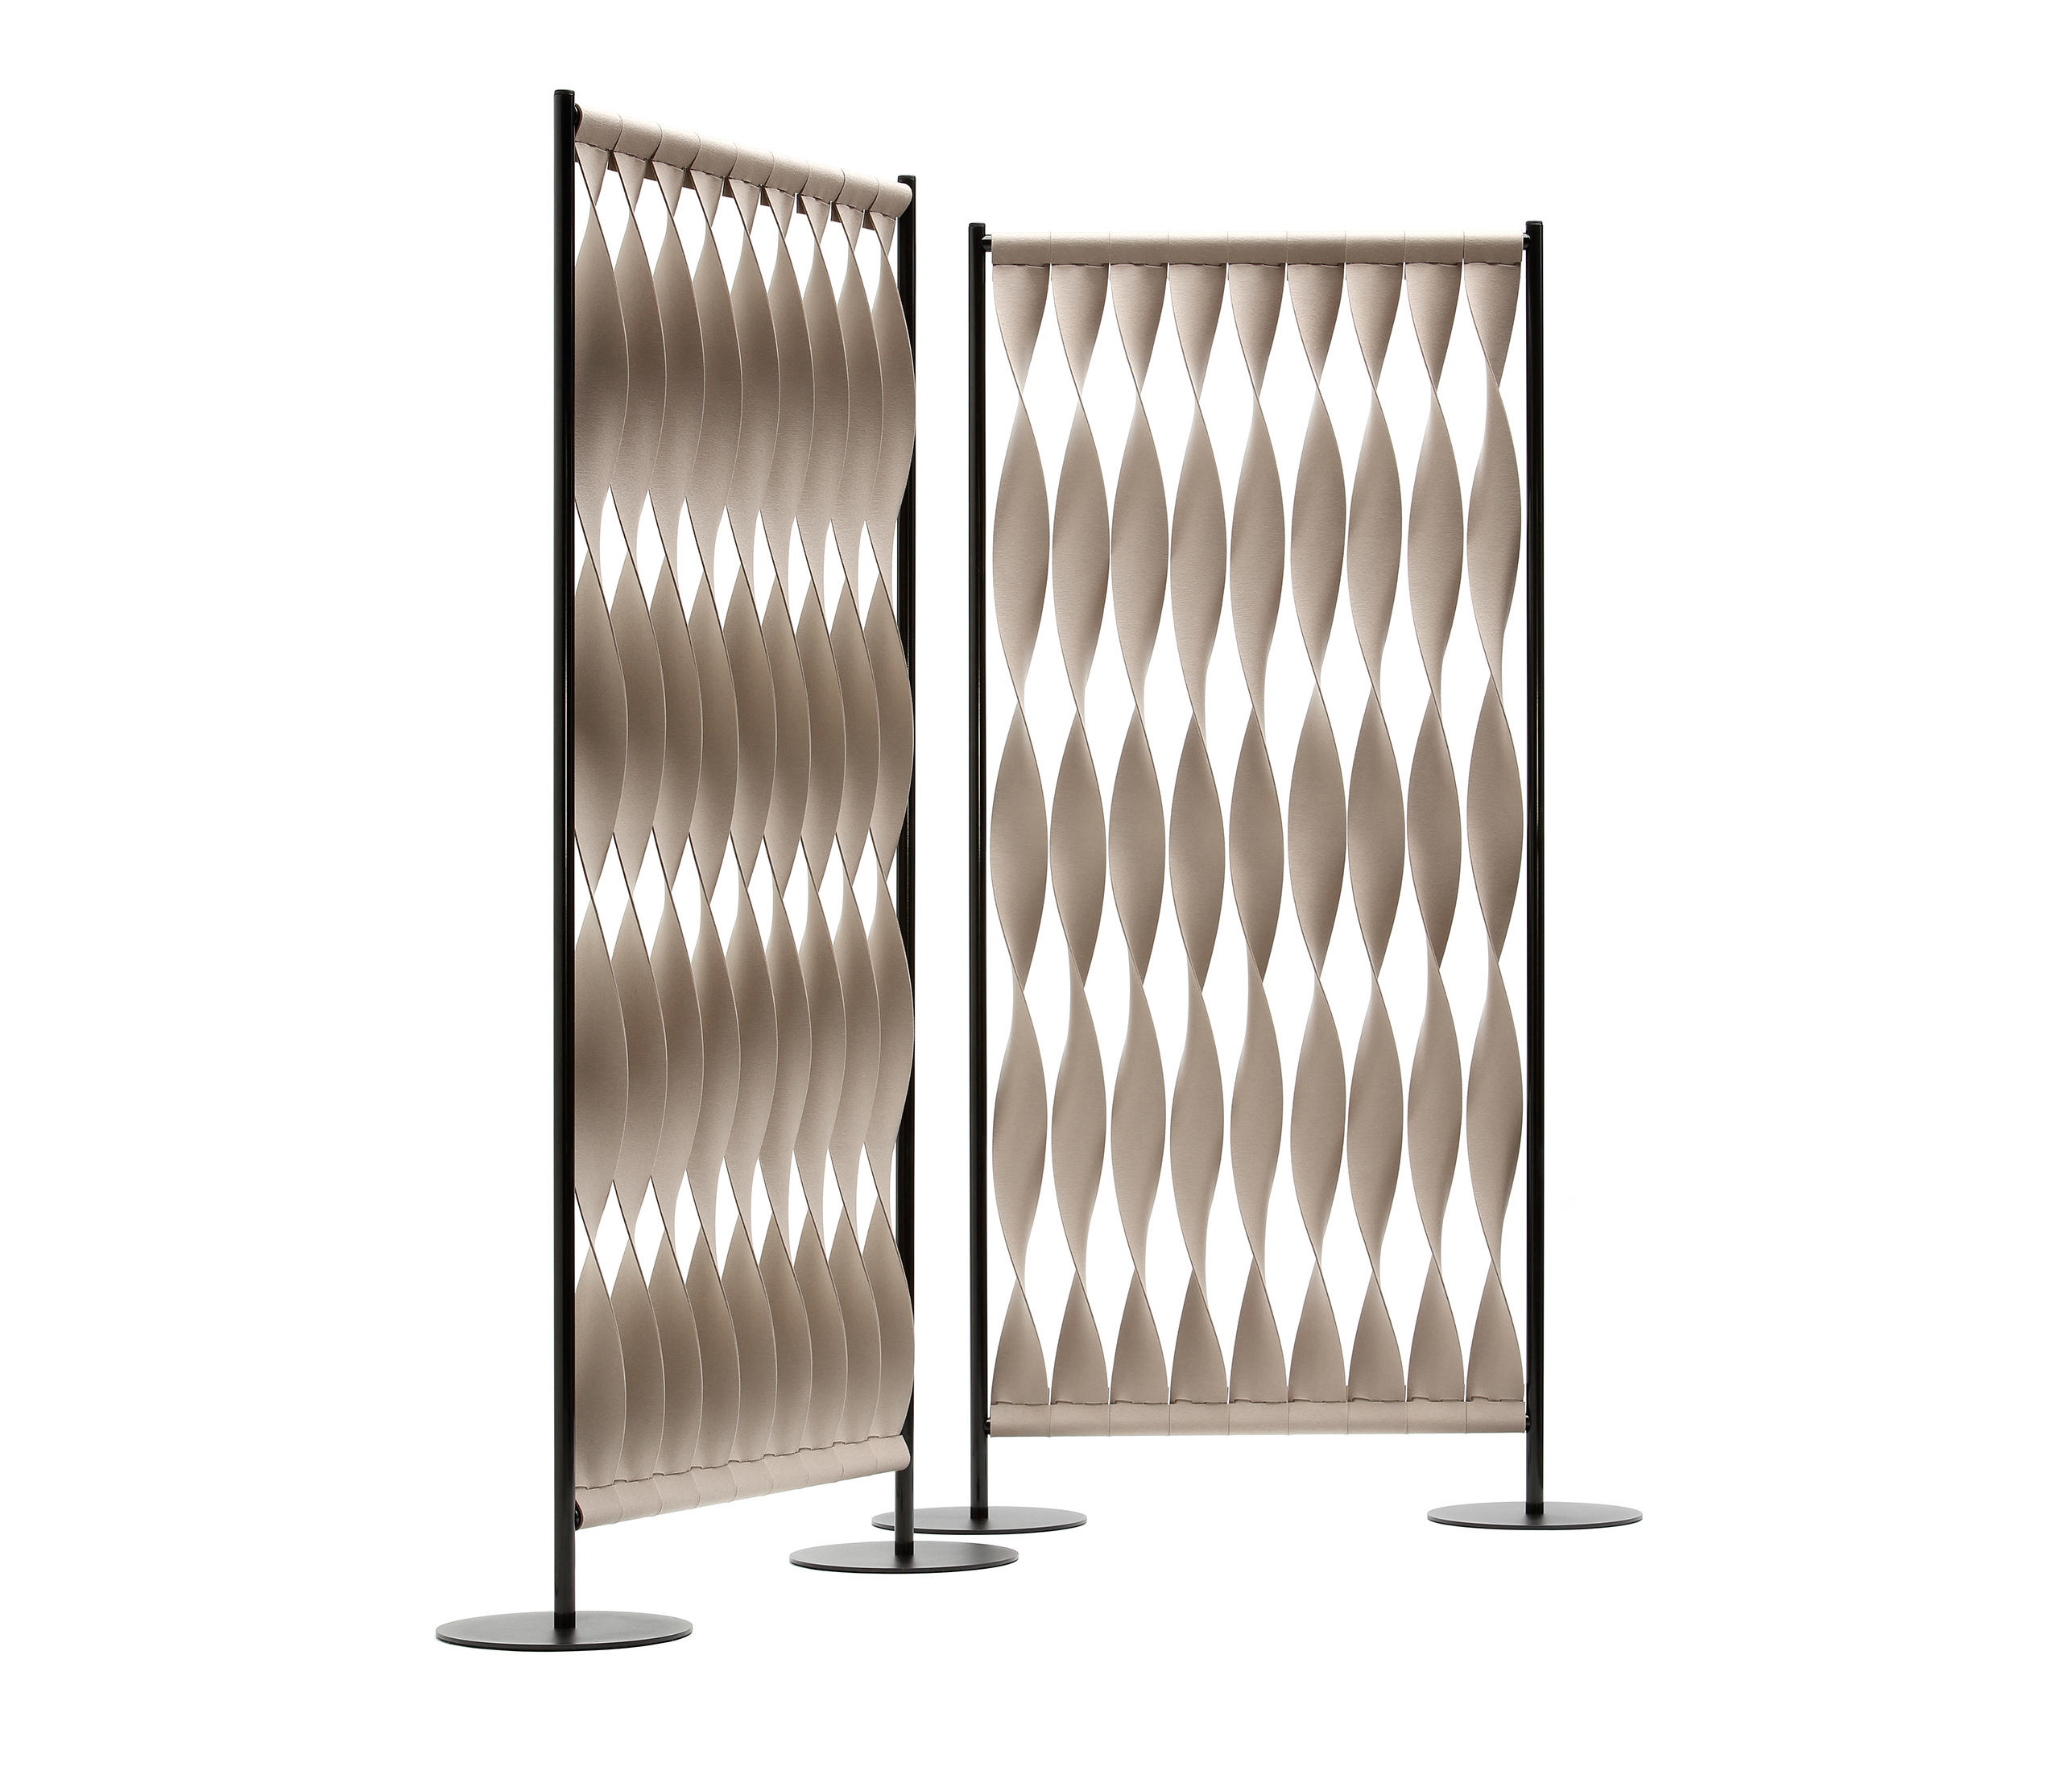 Parvent Paravent Flow Space Dividers From Hey Sign Architonic